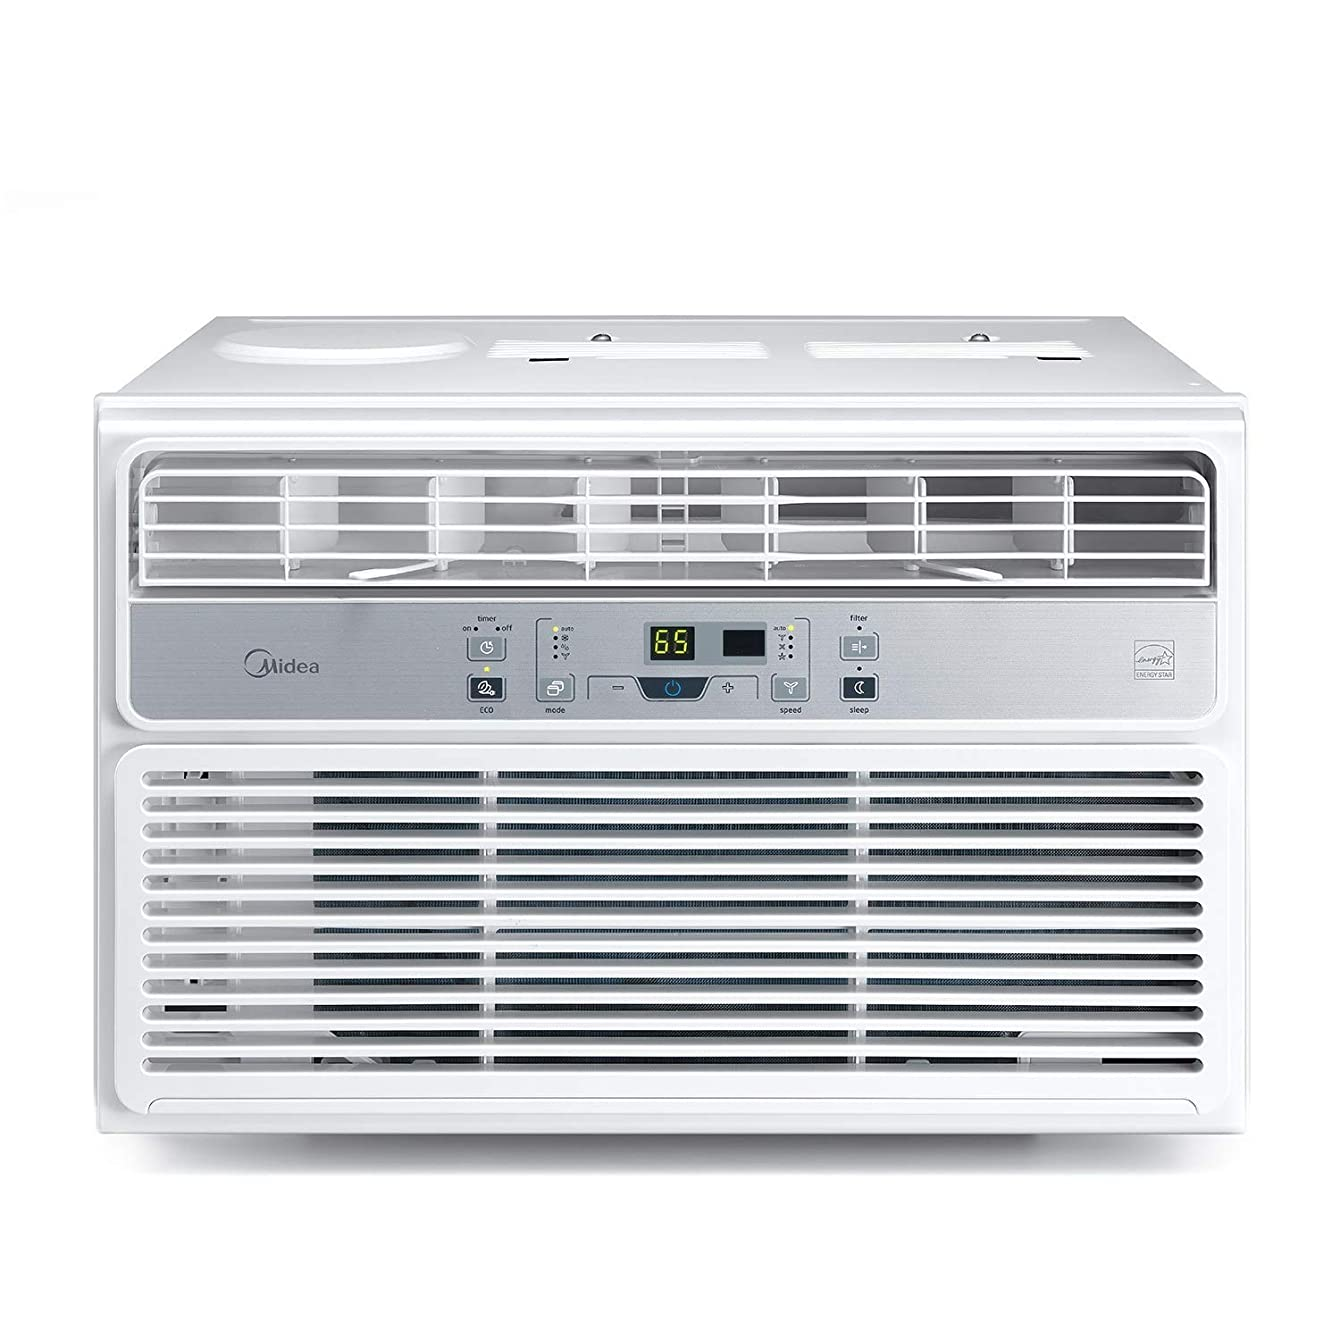 MIDEA MAW10R1BWT Window Air Conditioner 10000 BTU Easycool AC (Cooling, Dehumidifier and Fan Functions) for Rooms up to 450 Sq, ft. with Remote Control, 10,000, White yxfdmayikxfce00